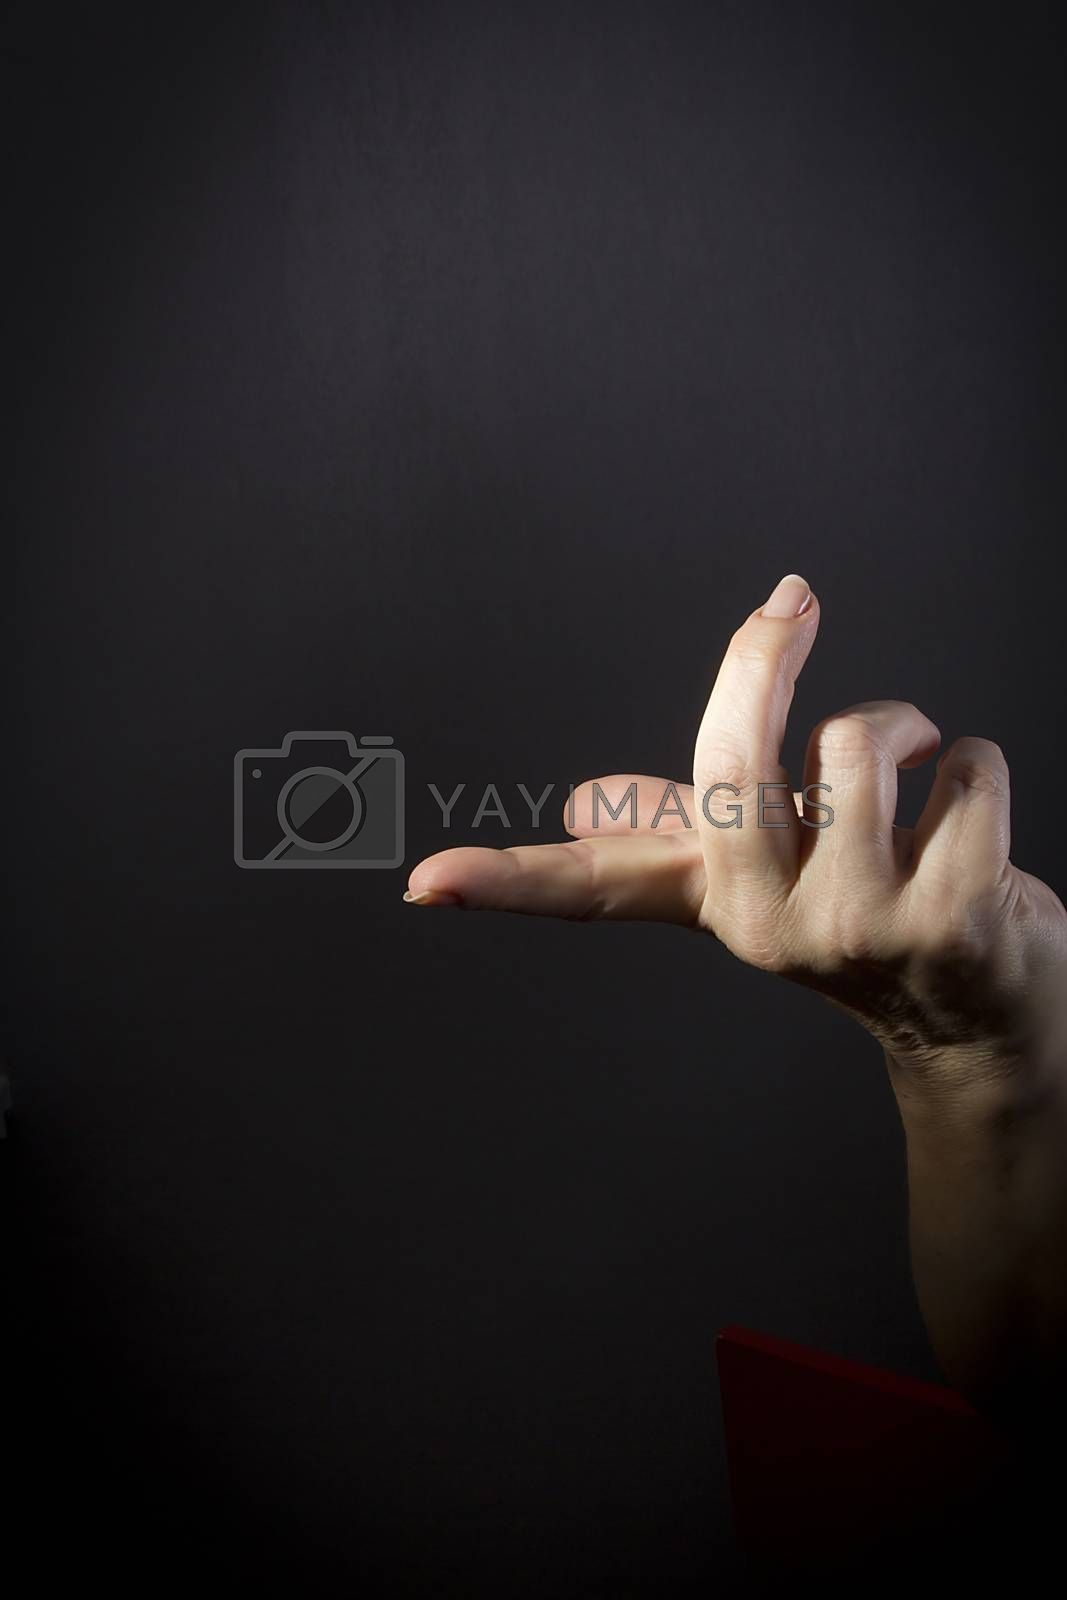 Female hand with protruding forefinger on black background